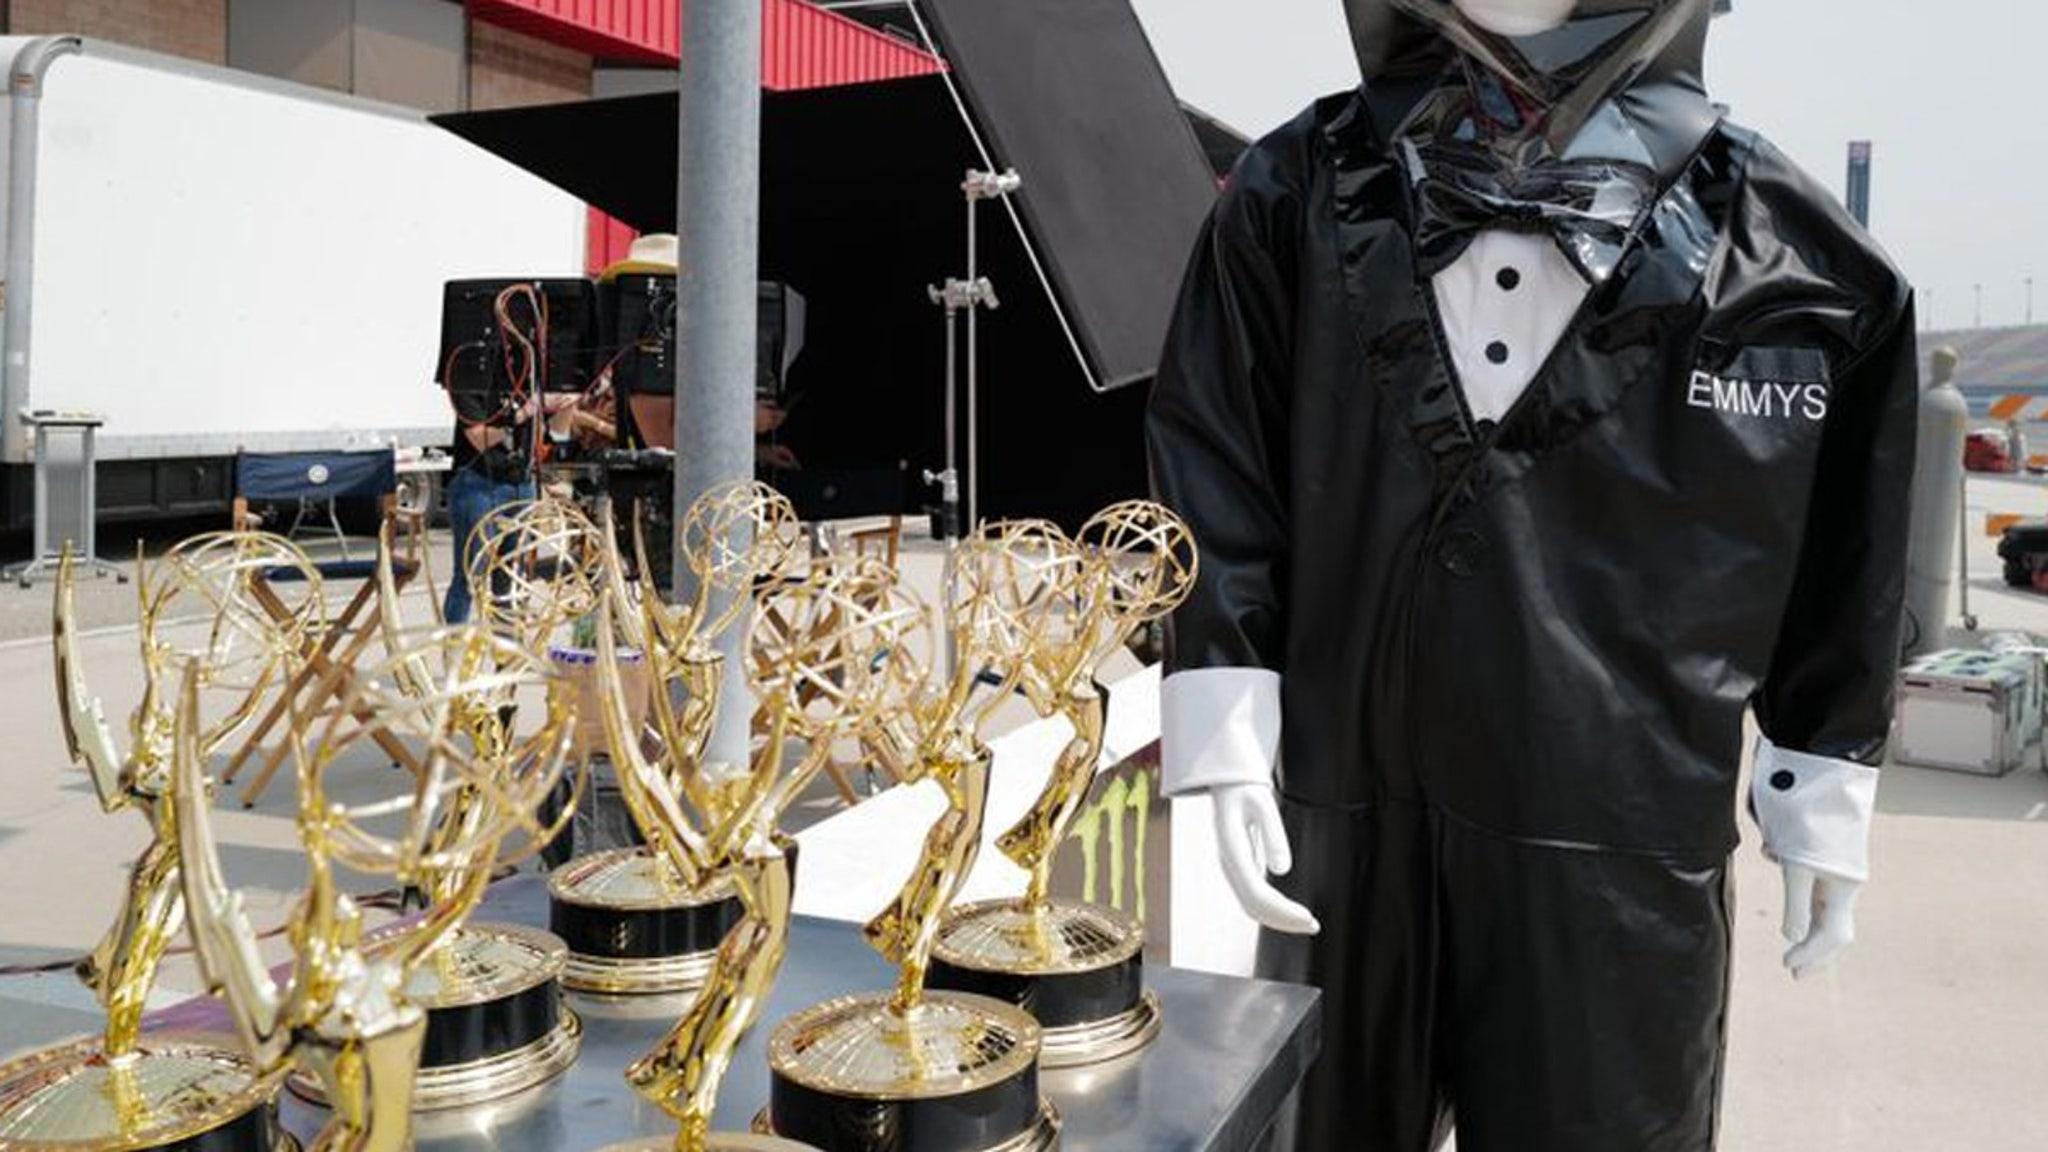 Emmys Going Full 2020 With Trophy Presenters In Hazmat Suits